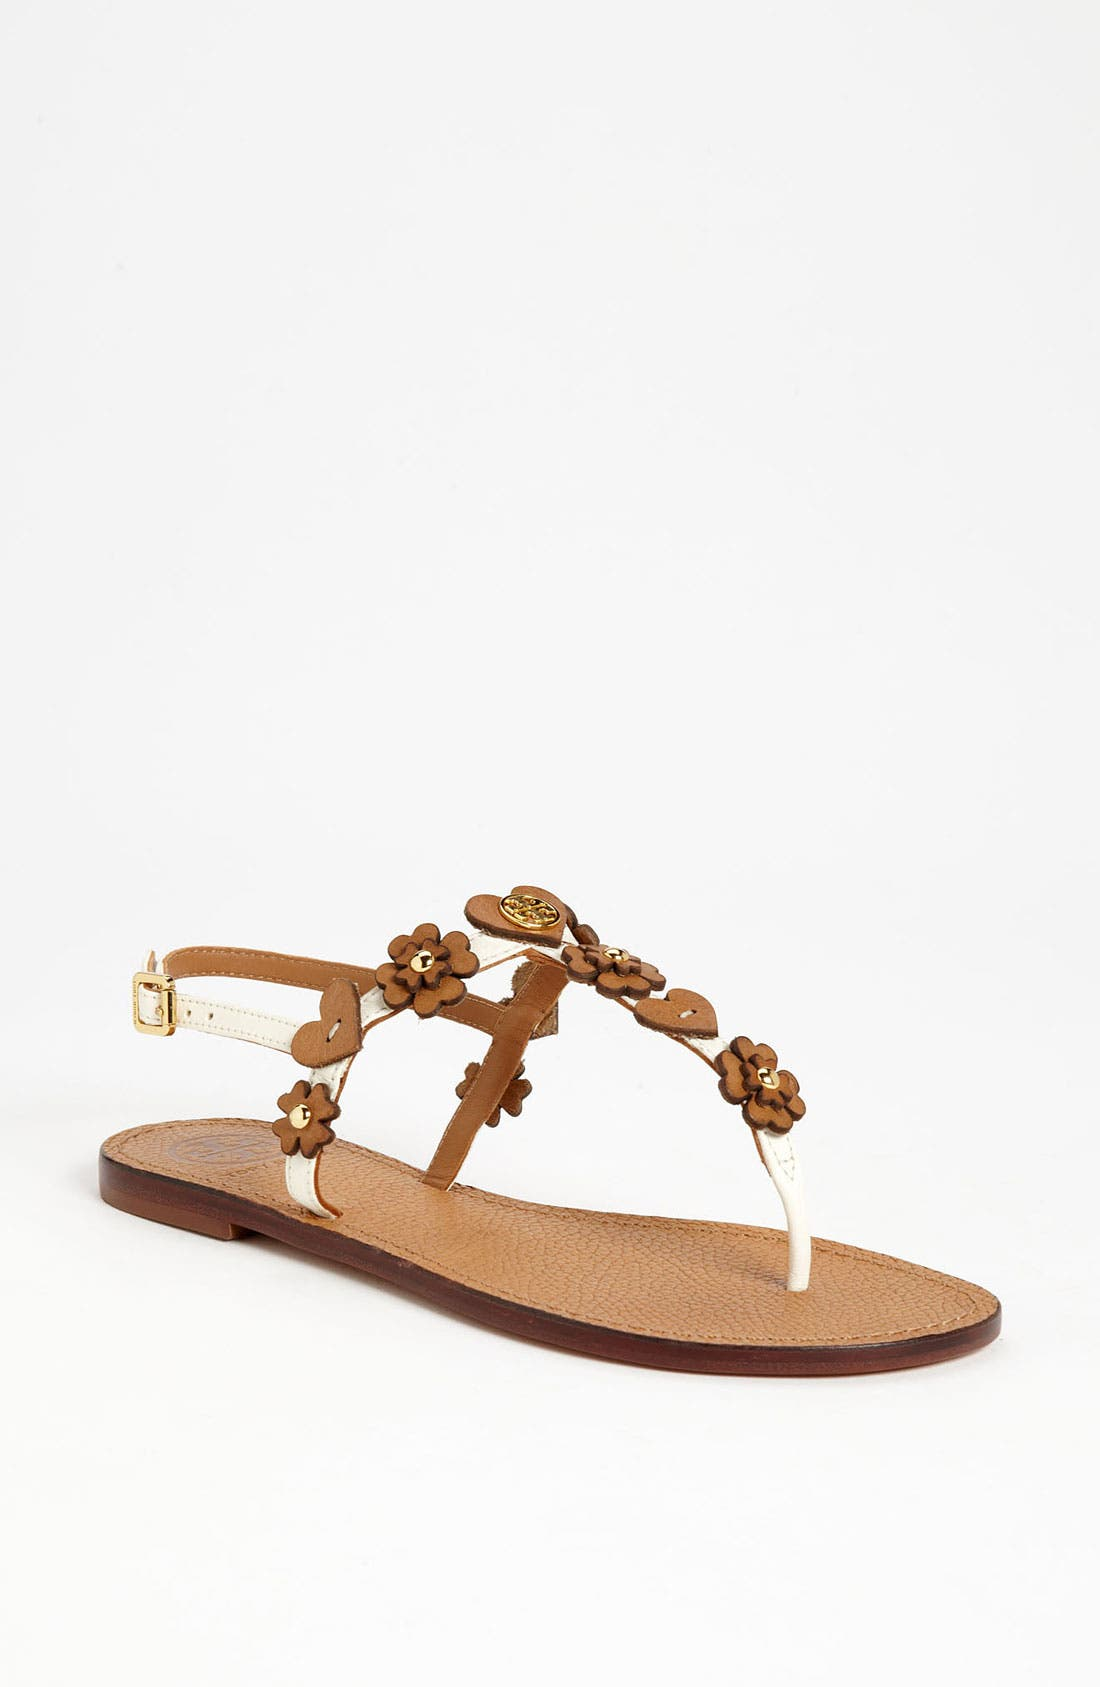 'Cori' Thong Sandal,                             Main thumbnail 1, color,                             105